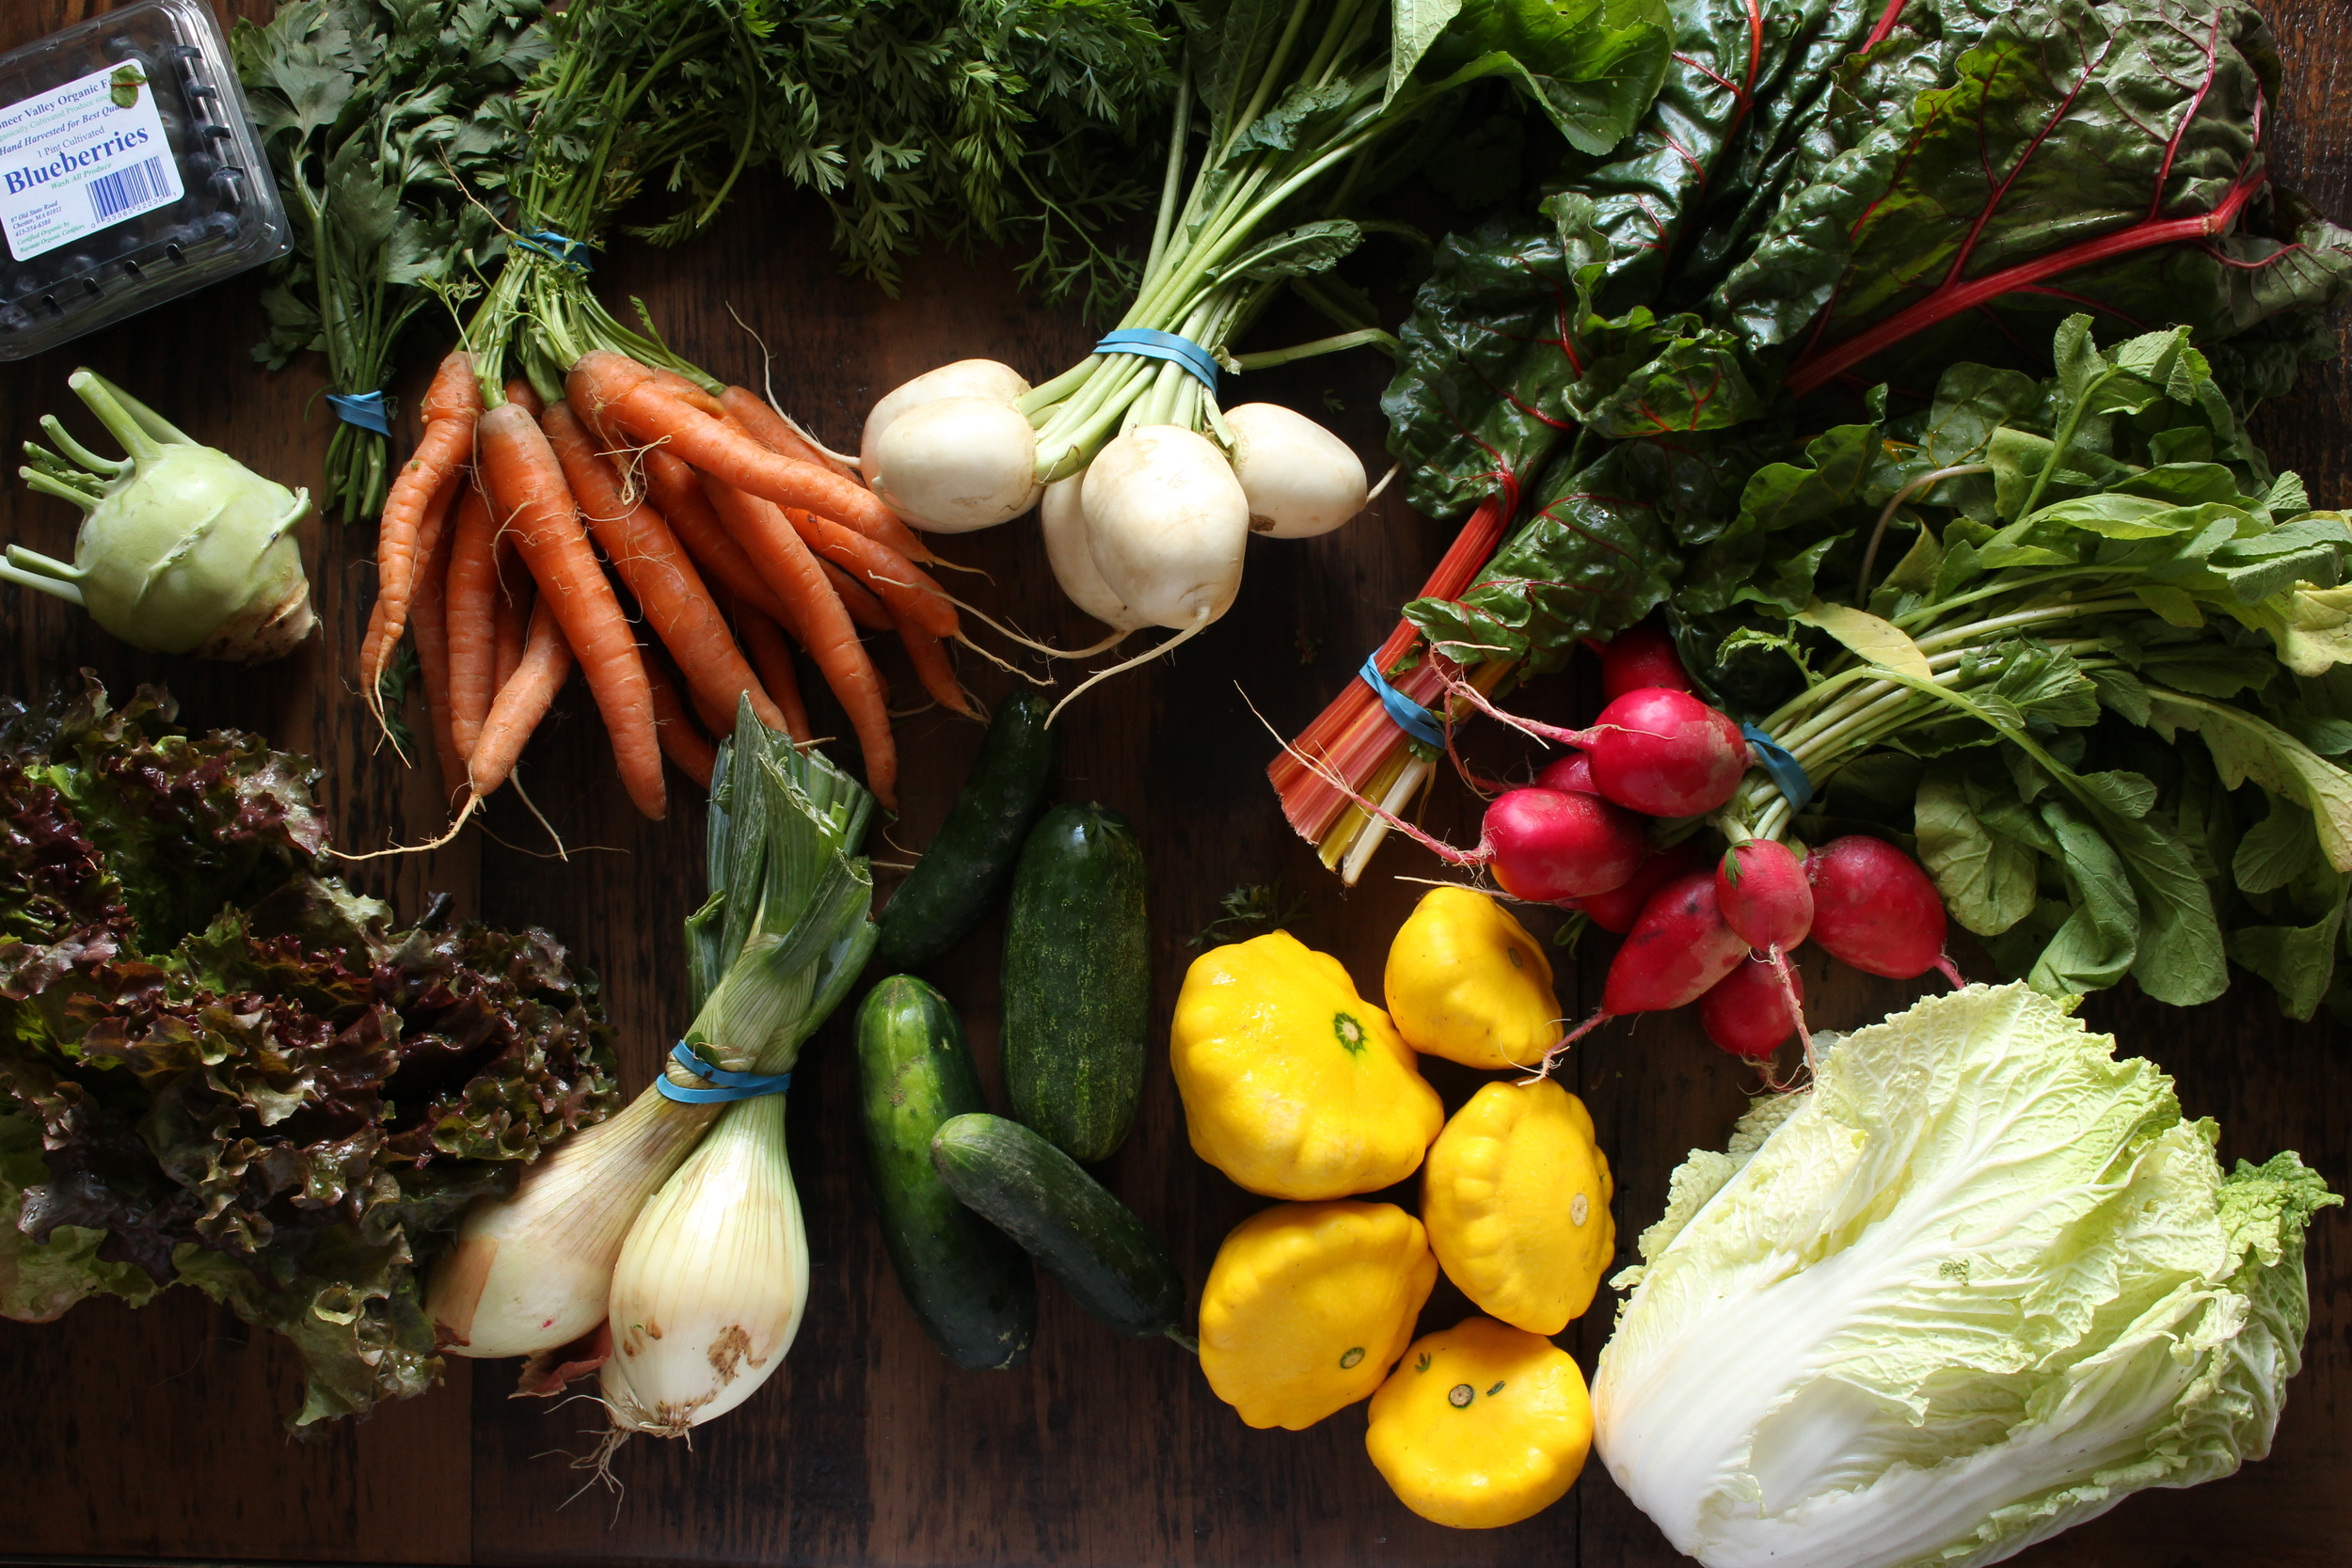 CSA Box 5 from Mountain View Farm